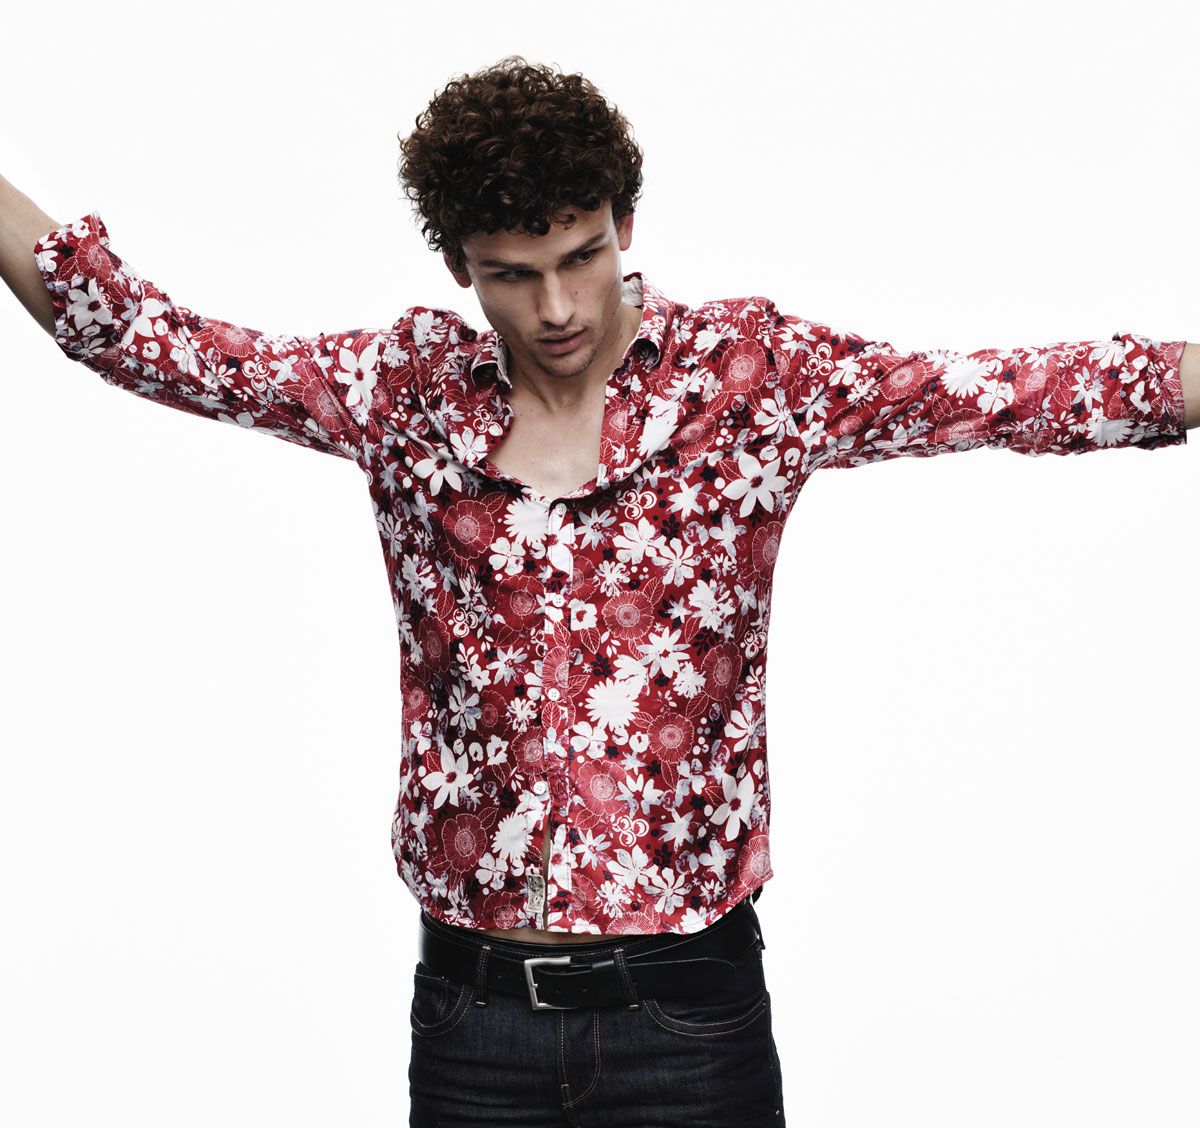 Pepe Jeans Enlists Simon Nessman for Spring Campaign